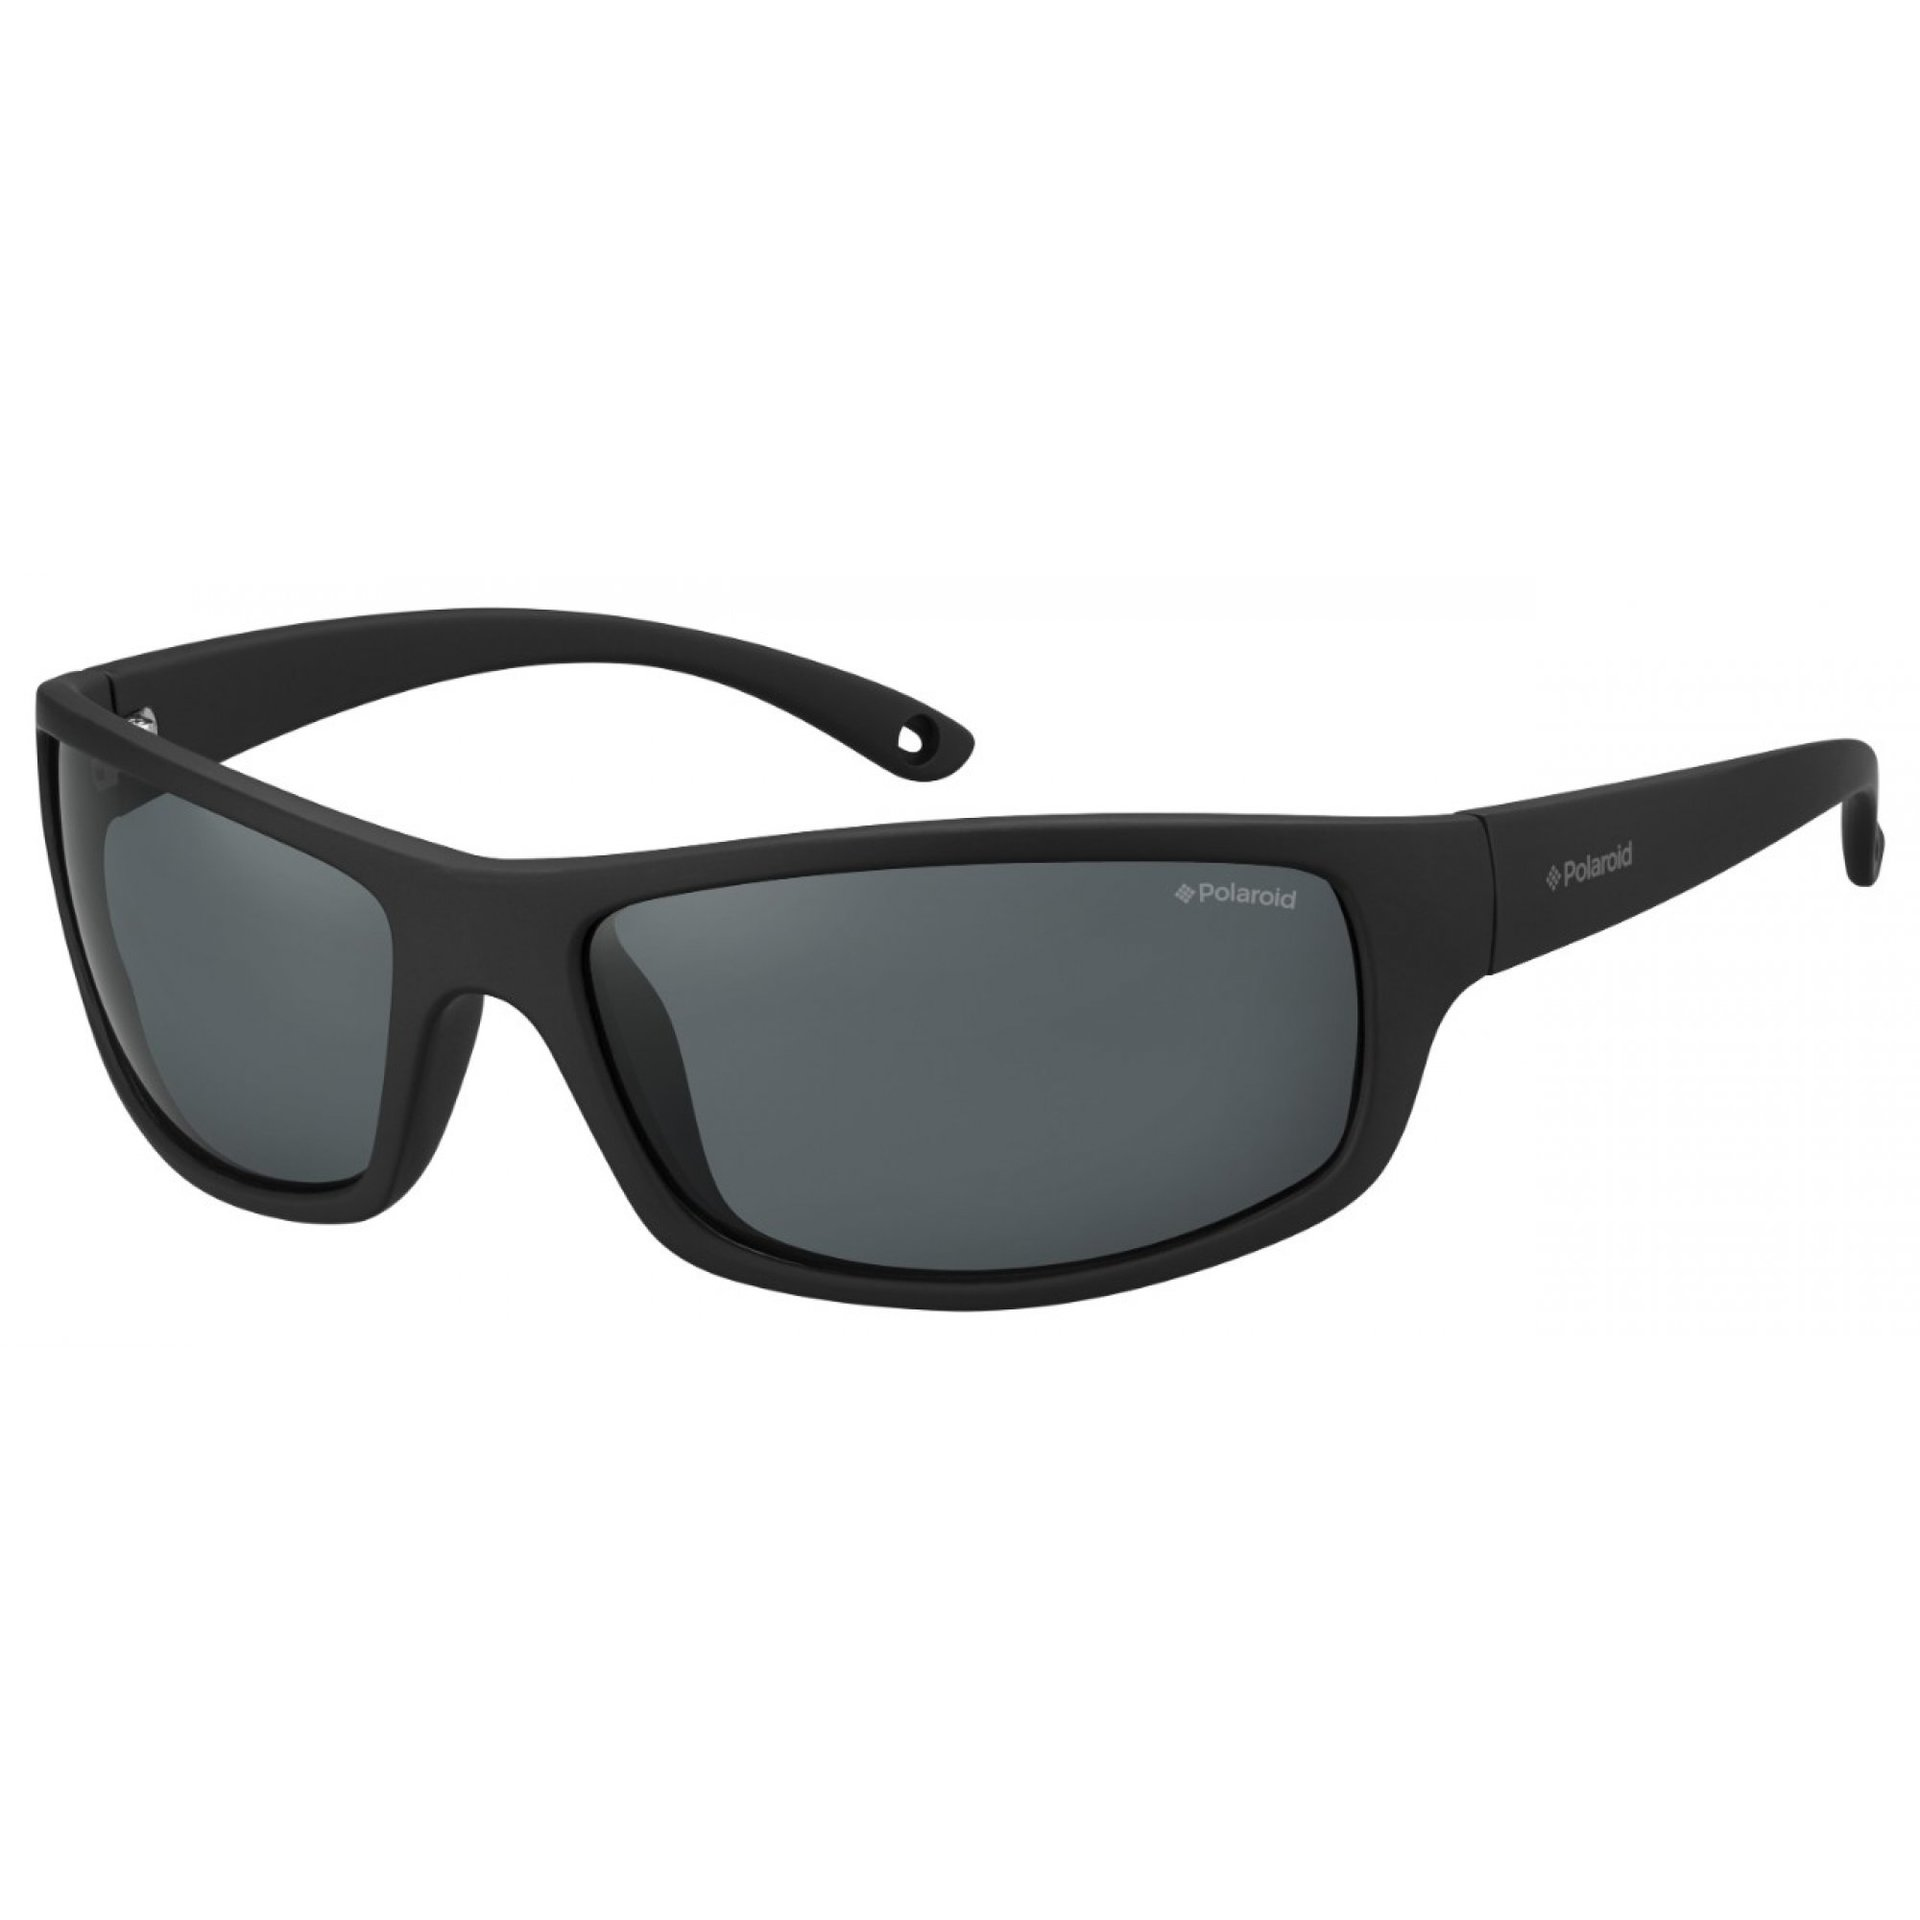 OKULARY POLAROID PLD 7017|S BLACK